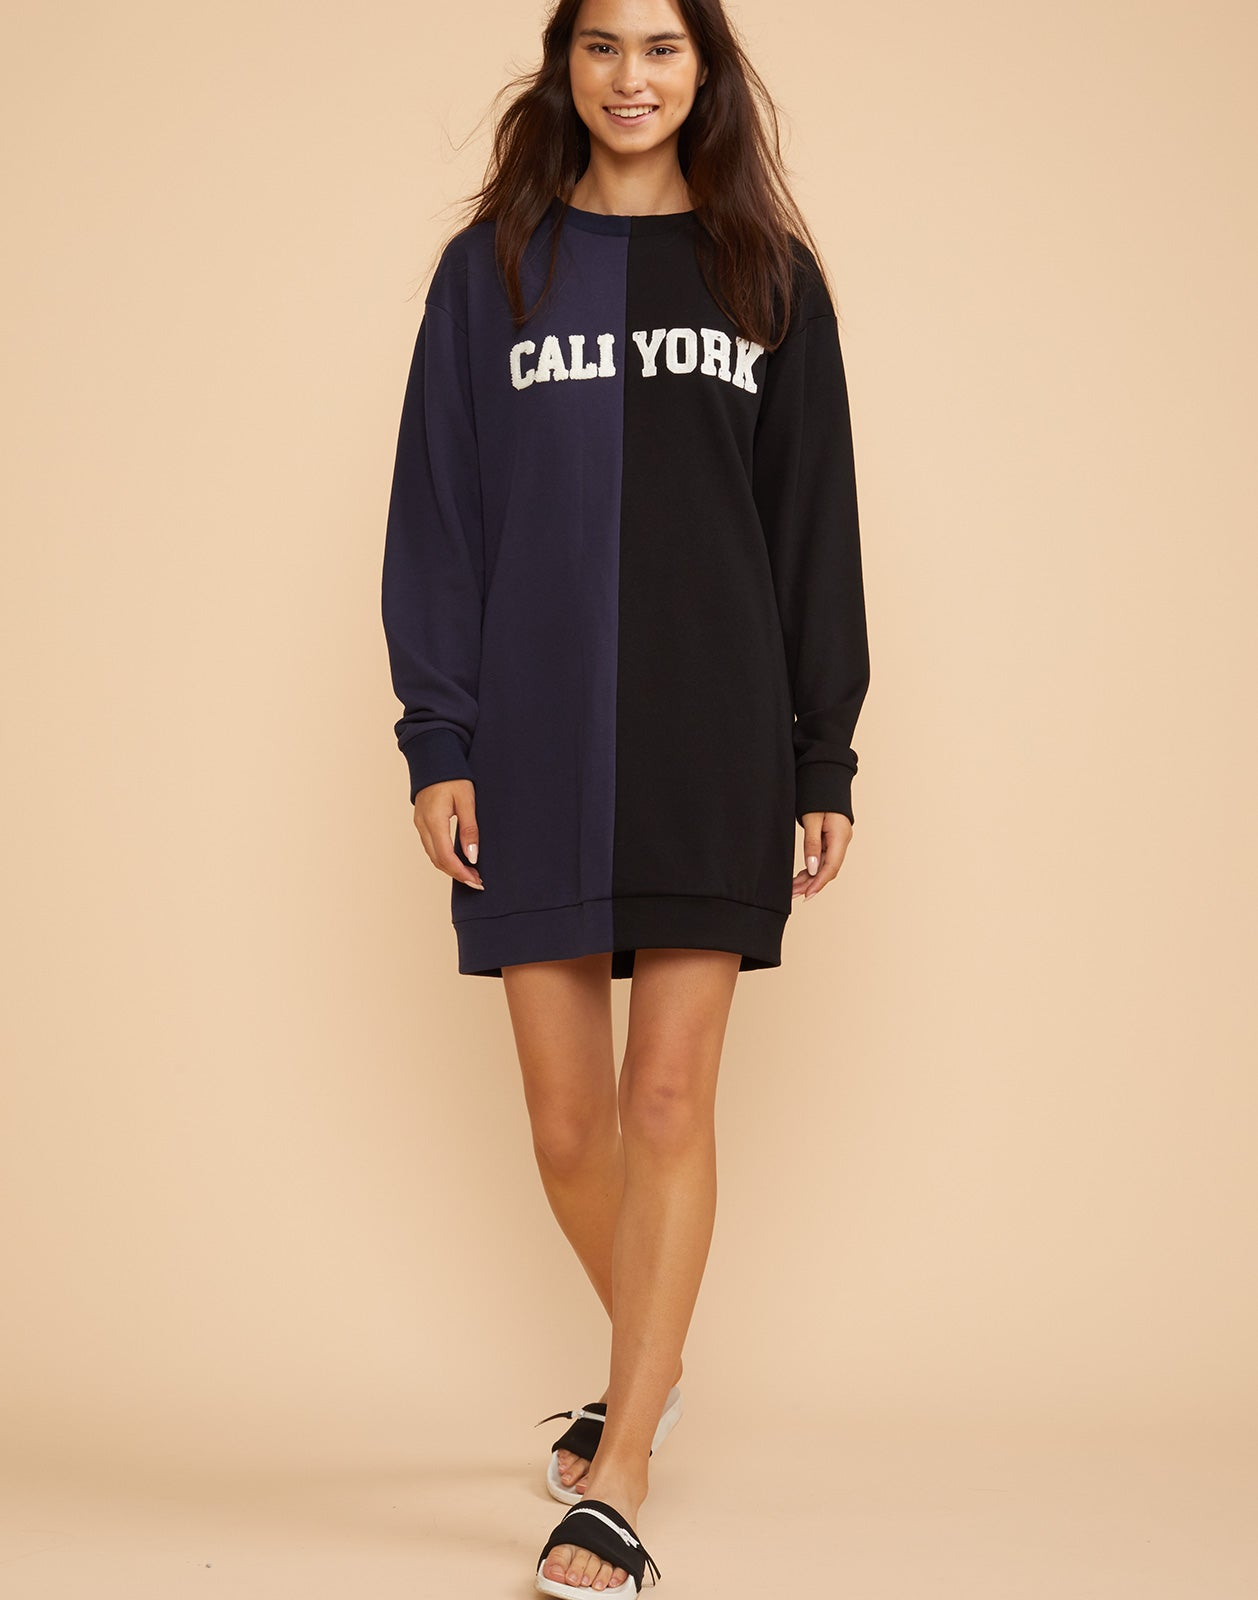 Front view of the CaliYork sweatshirt dress in half navy half black.